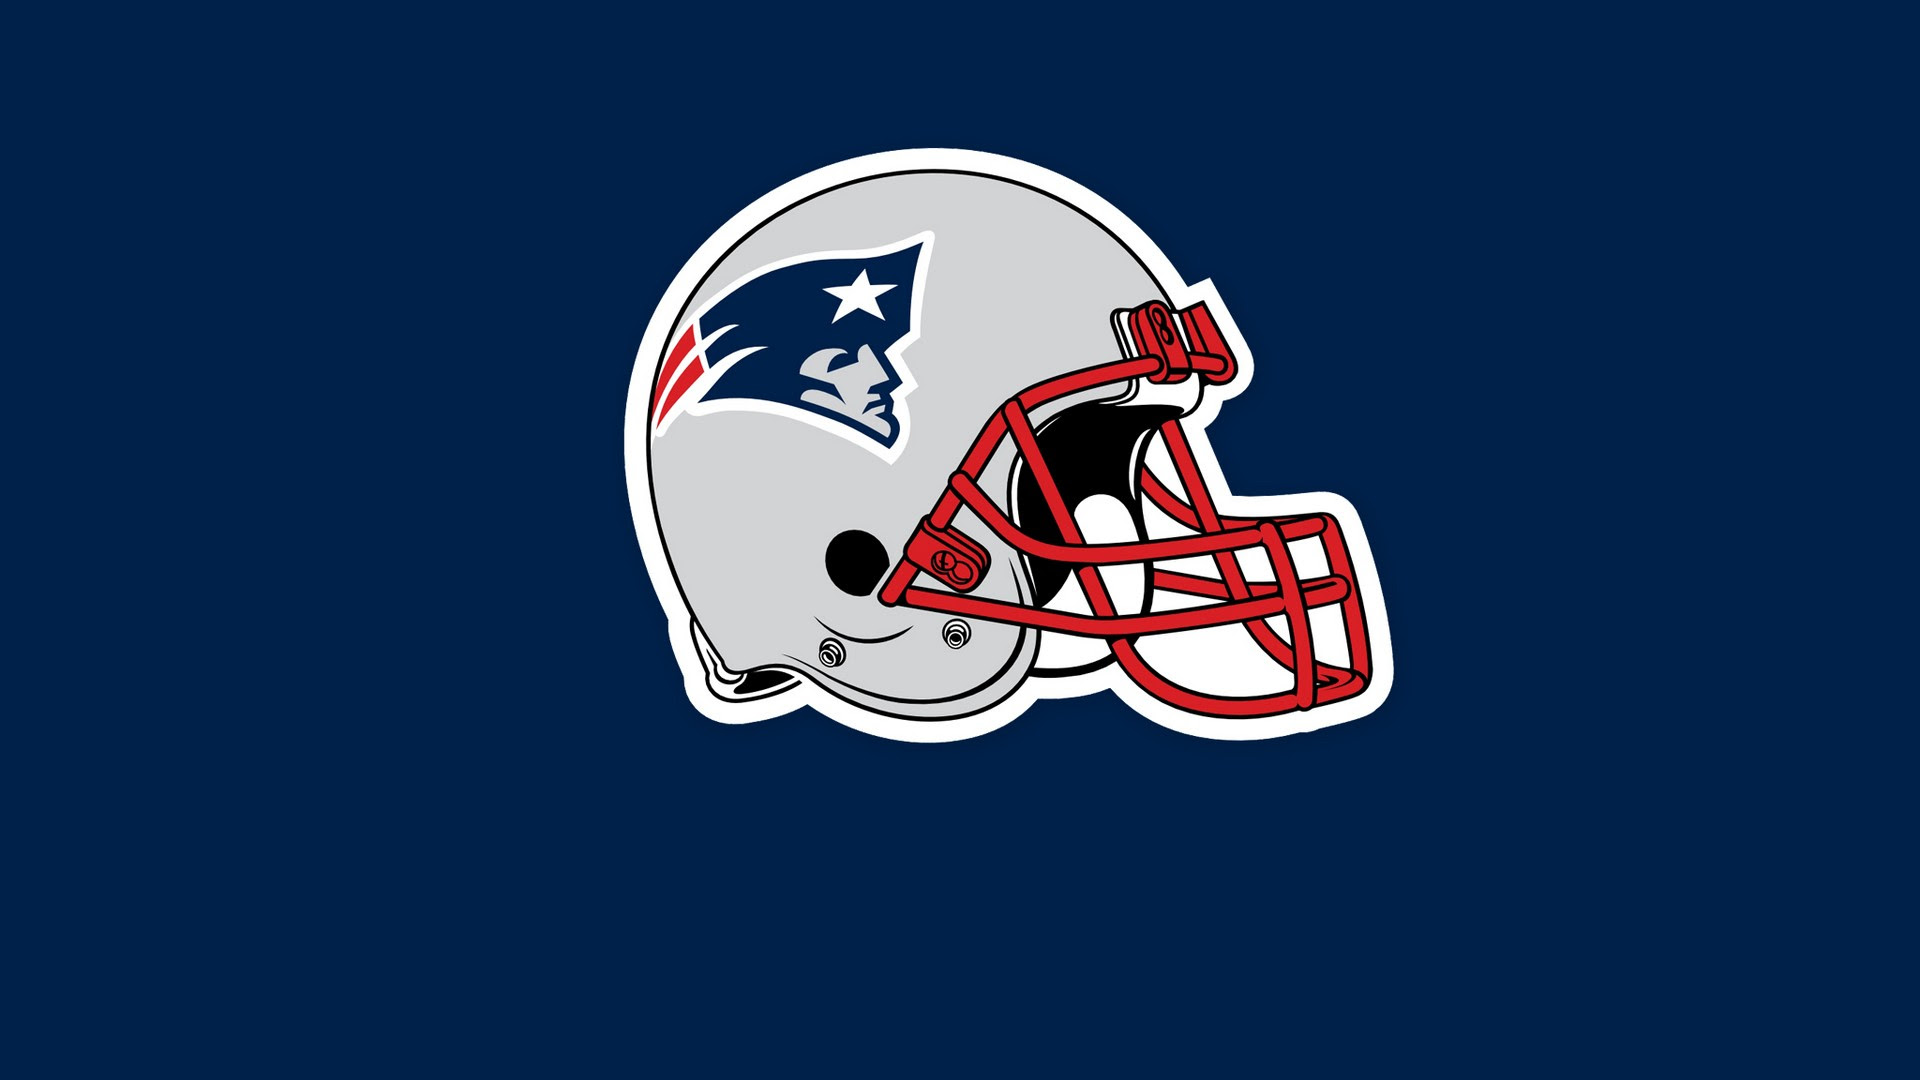 New England Patriots Backgrounds HD | 2019 NFL Football Wallpapers